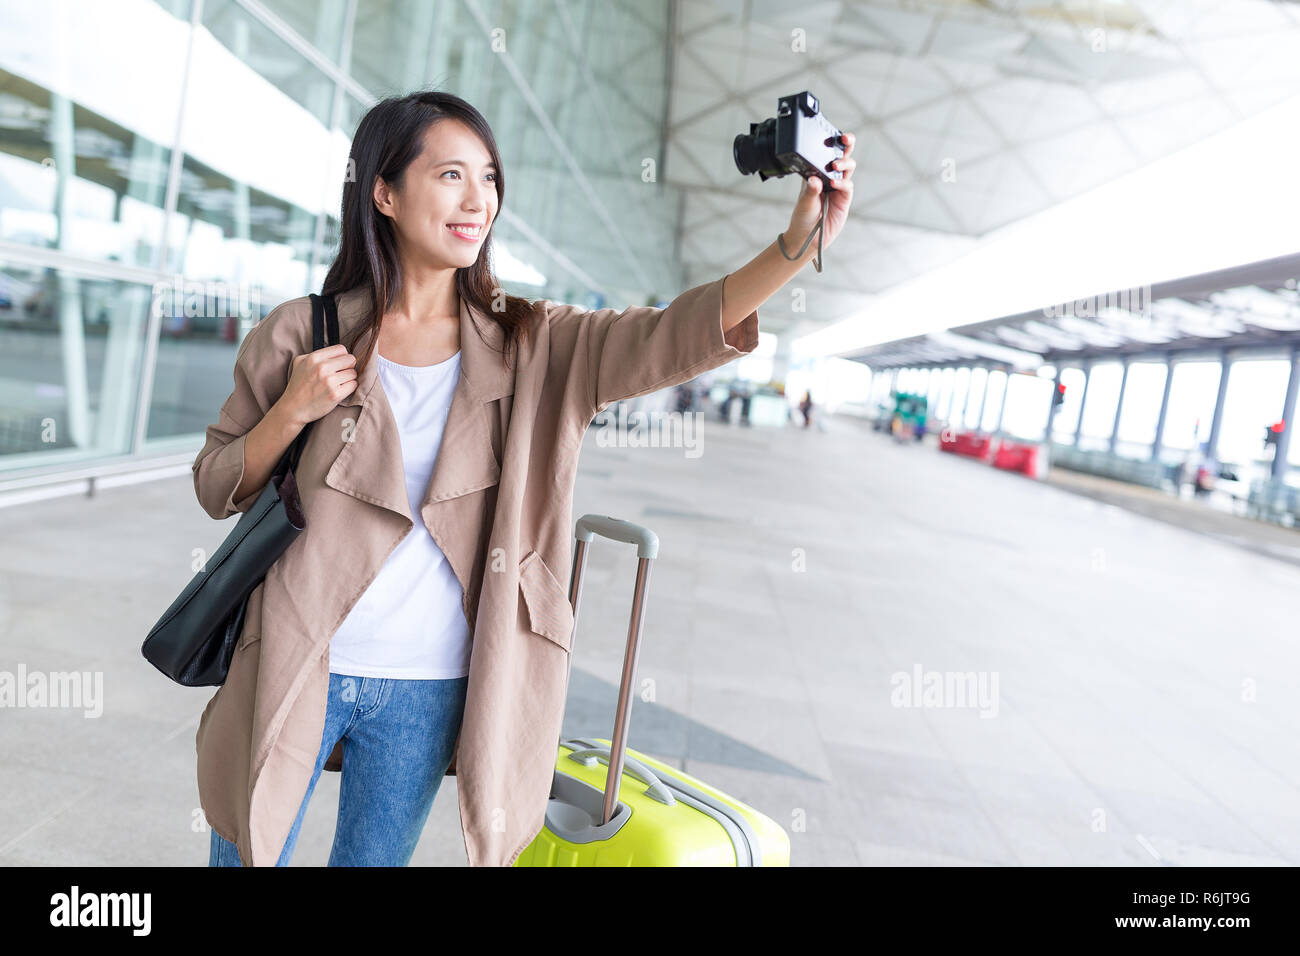 Woman using digital camera taking selfie in airport - Stock Image